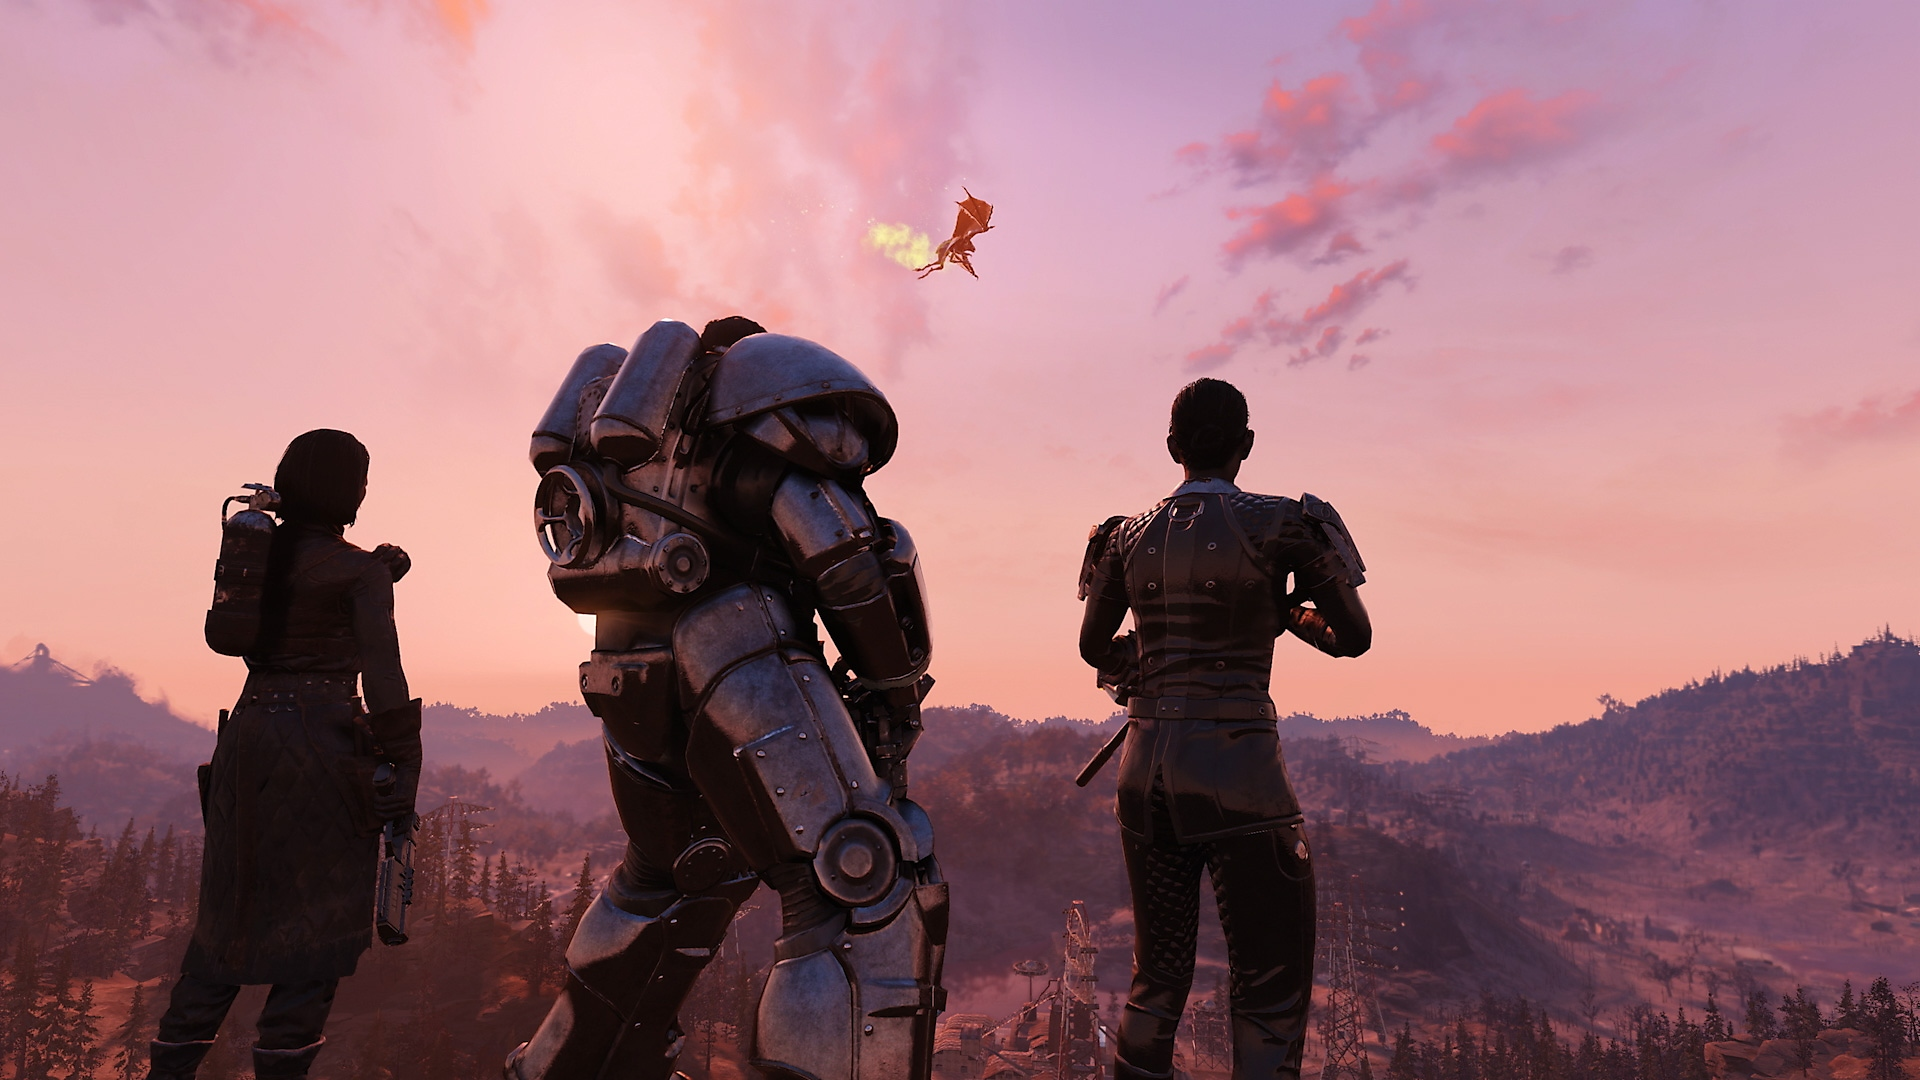 Captura de pantalla de Fallout 76 - Steel Dawn